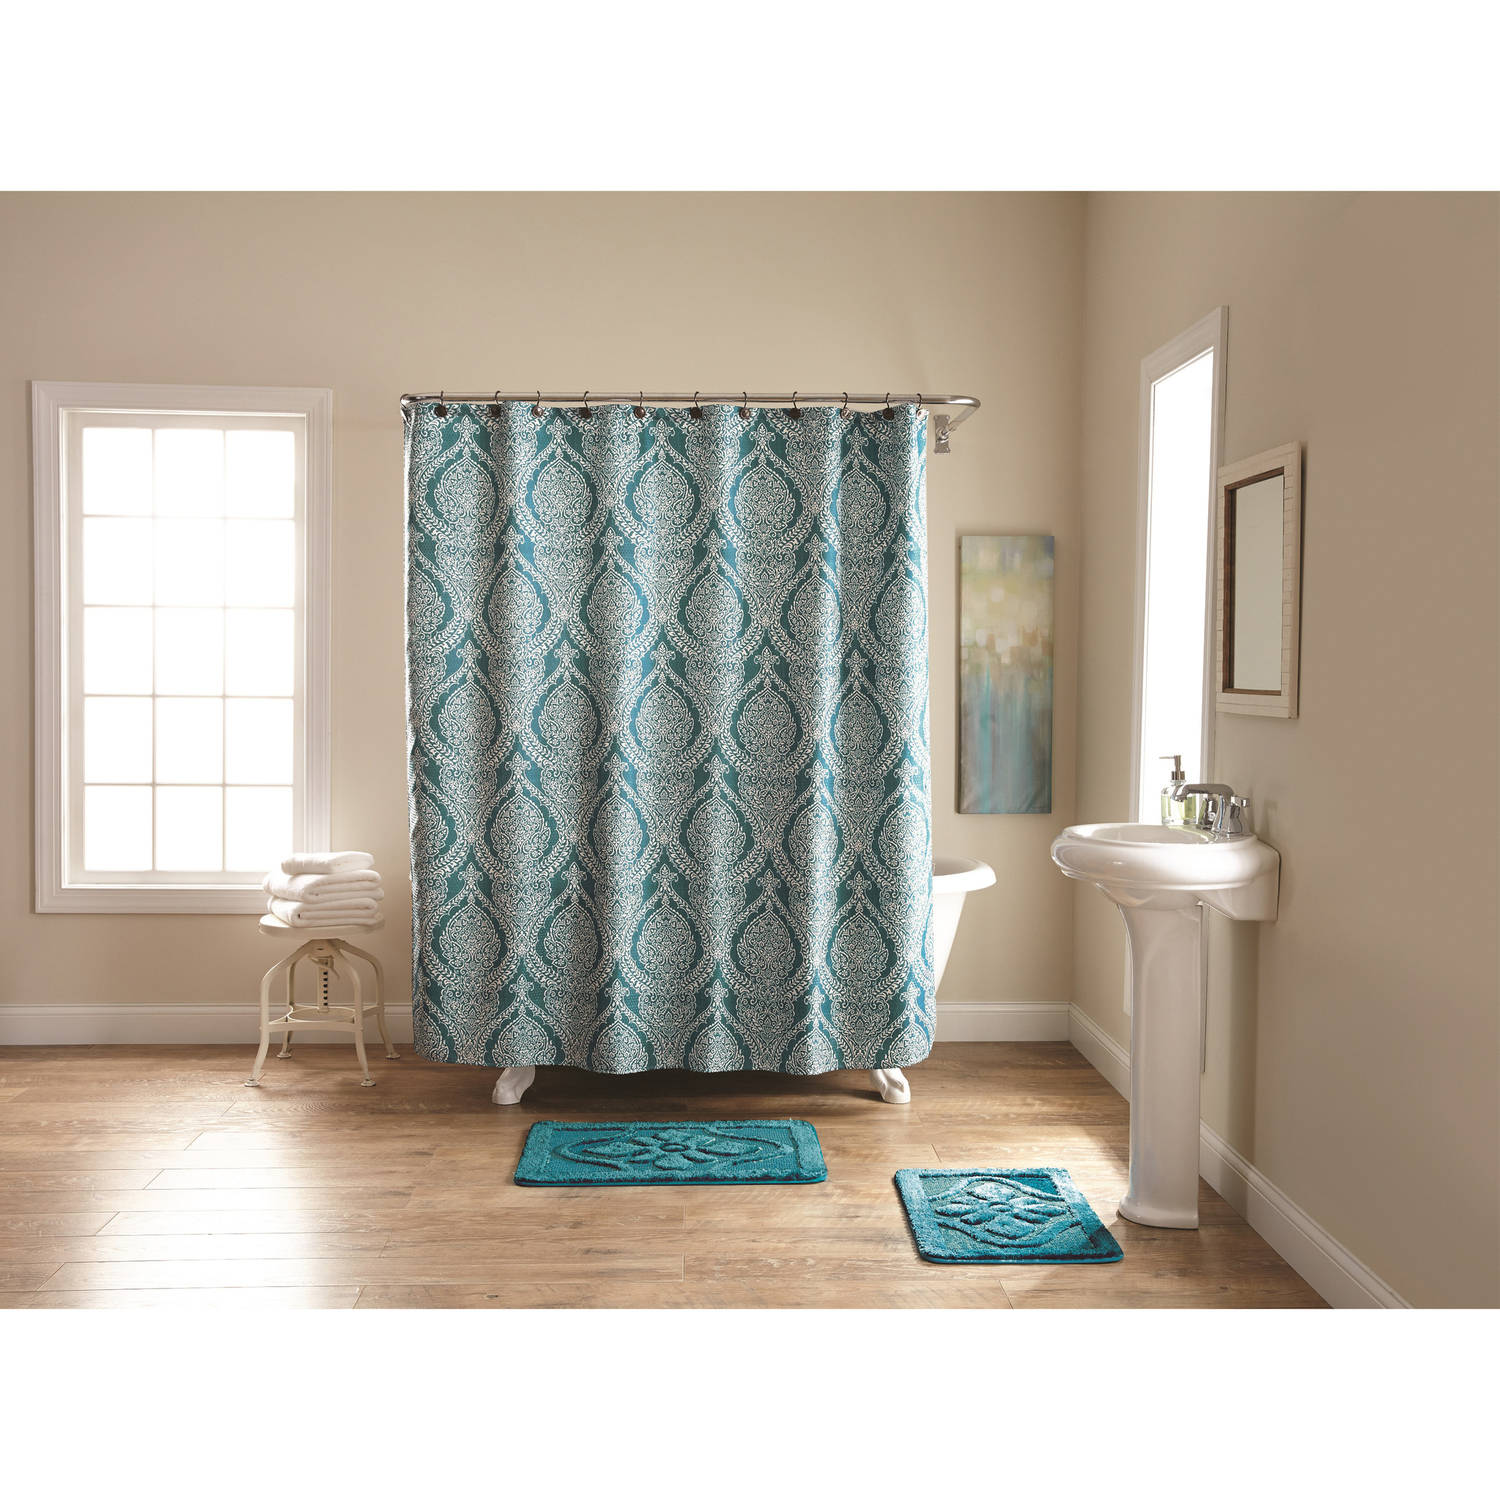 Better Homes and Gardens Teal Damask Fleur 15-Piece Bath in a Bag Set, Shower Curtain and Bath Rugs Included